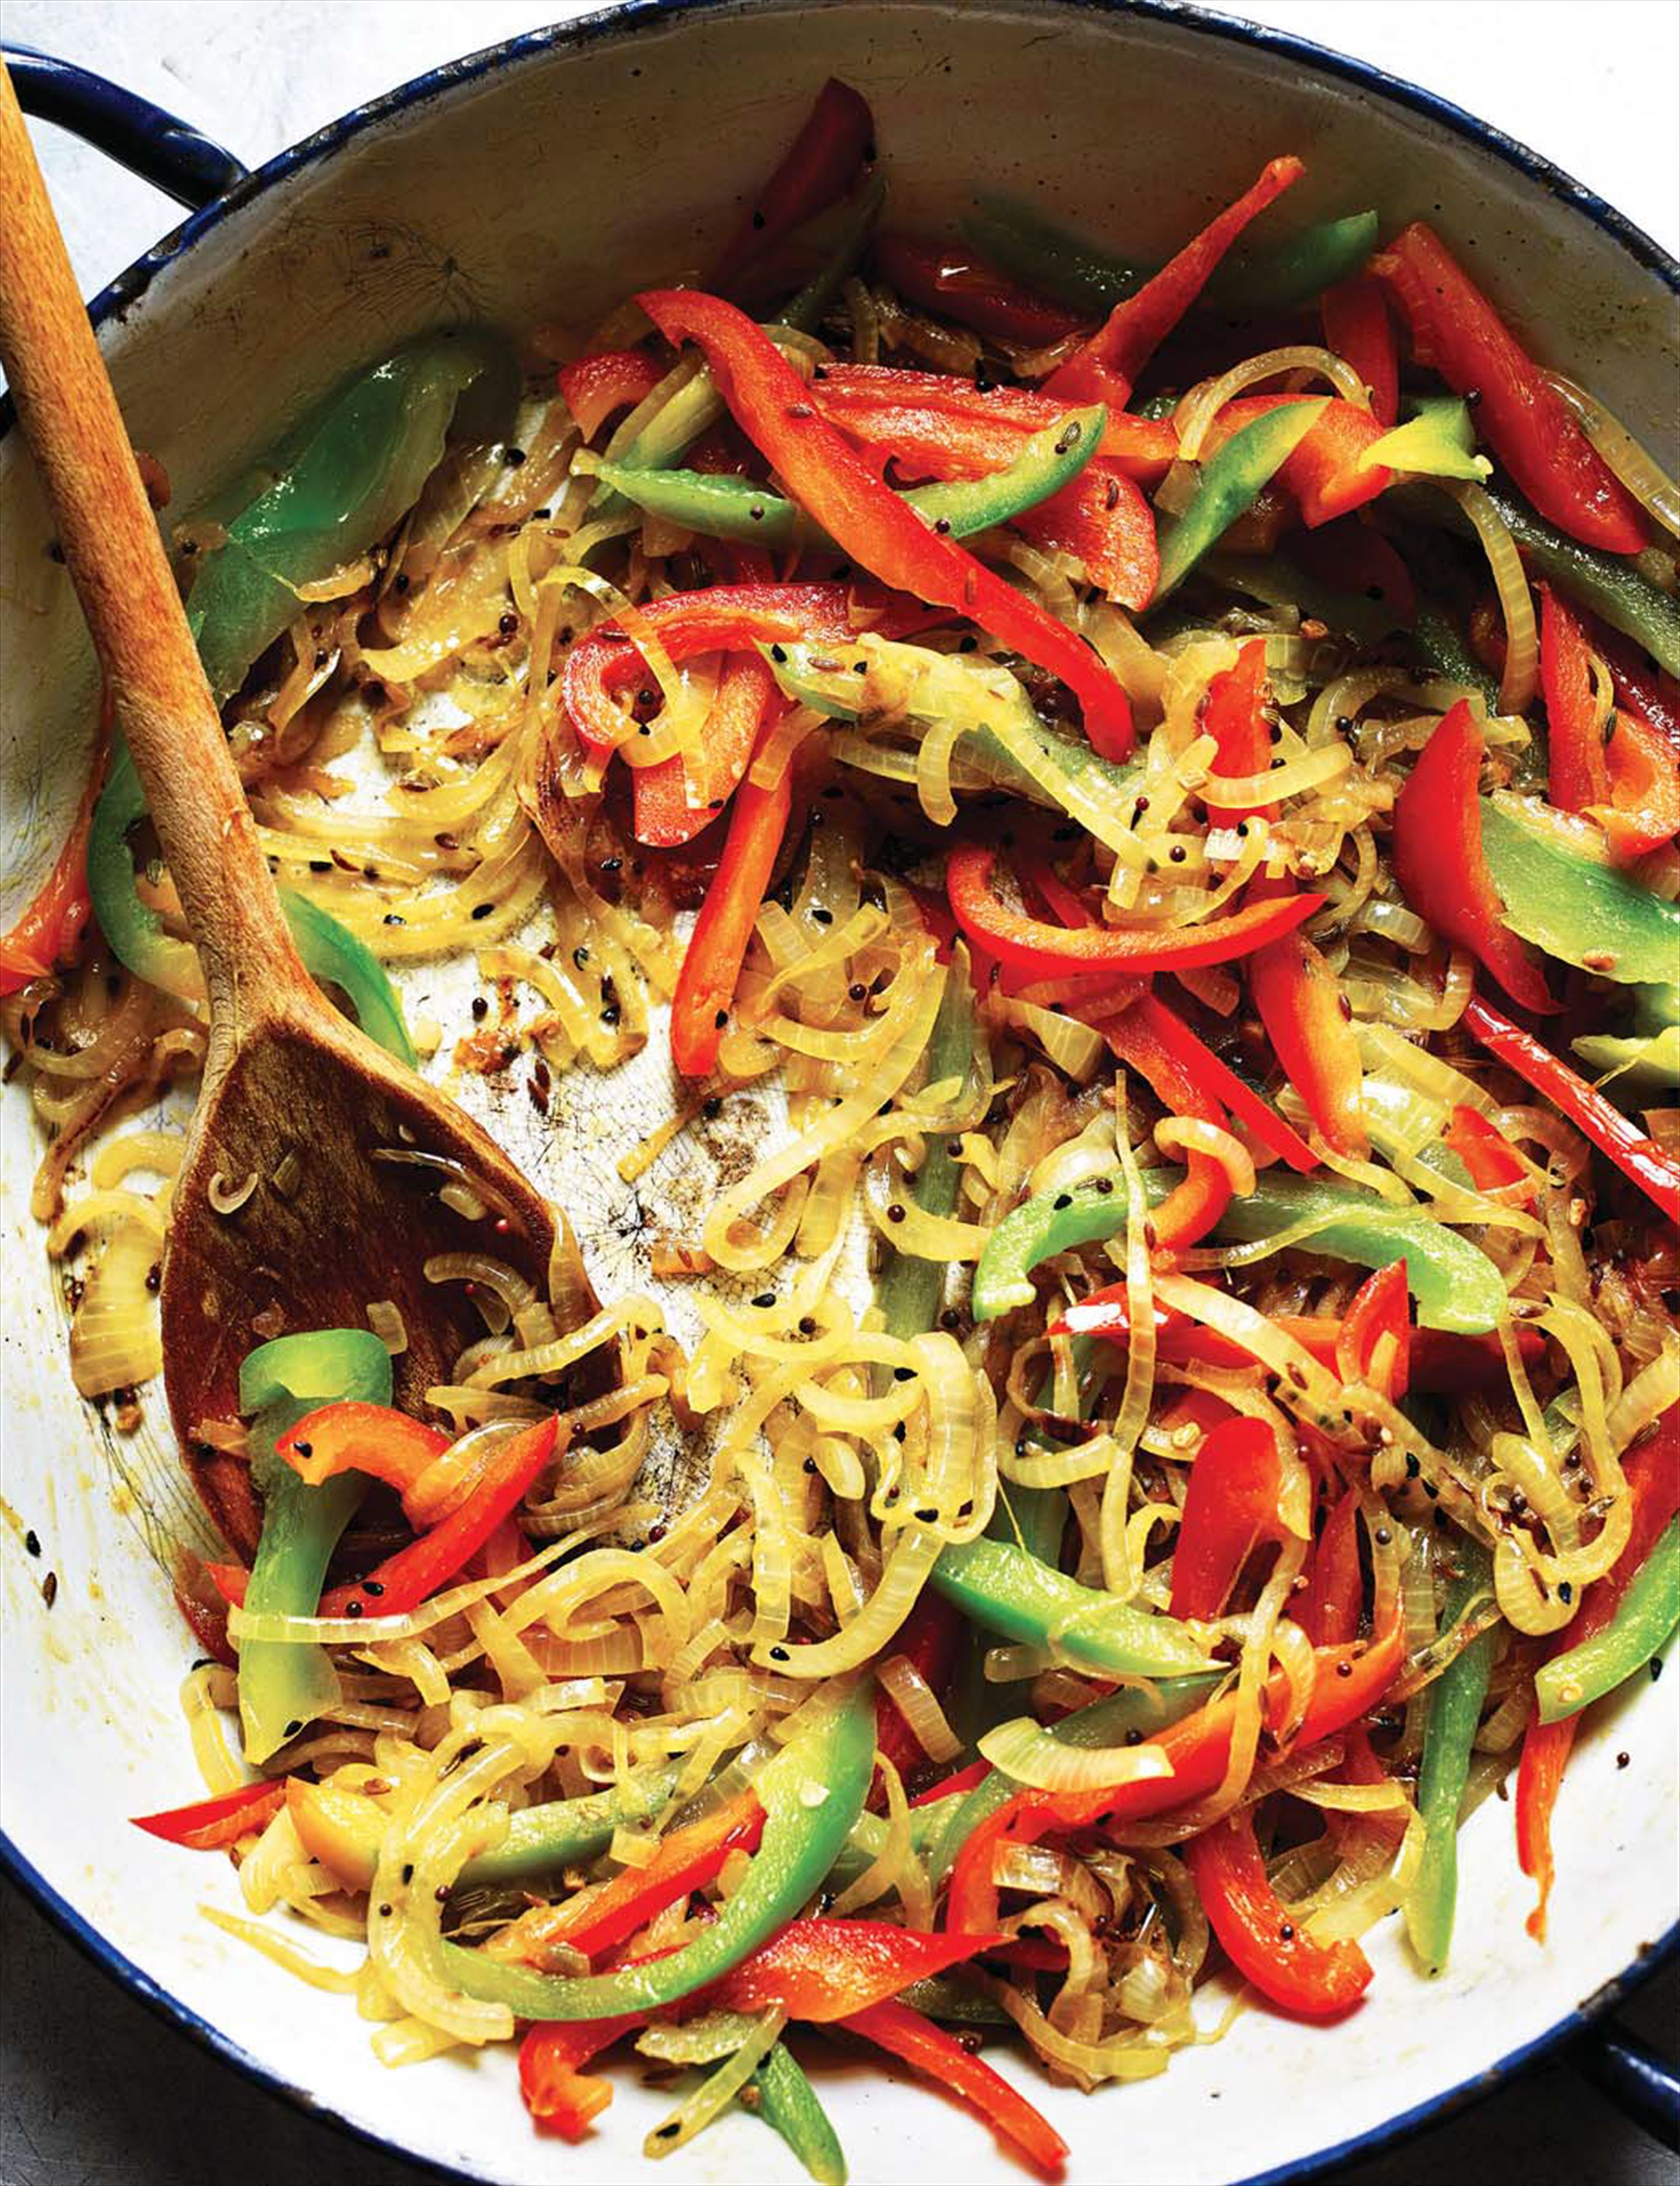 Stir-fried onions and other veggies